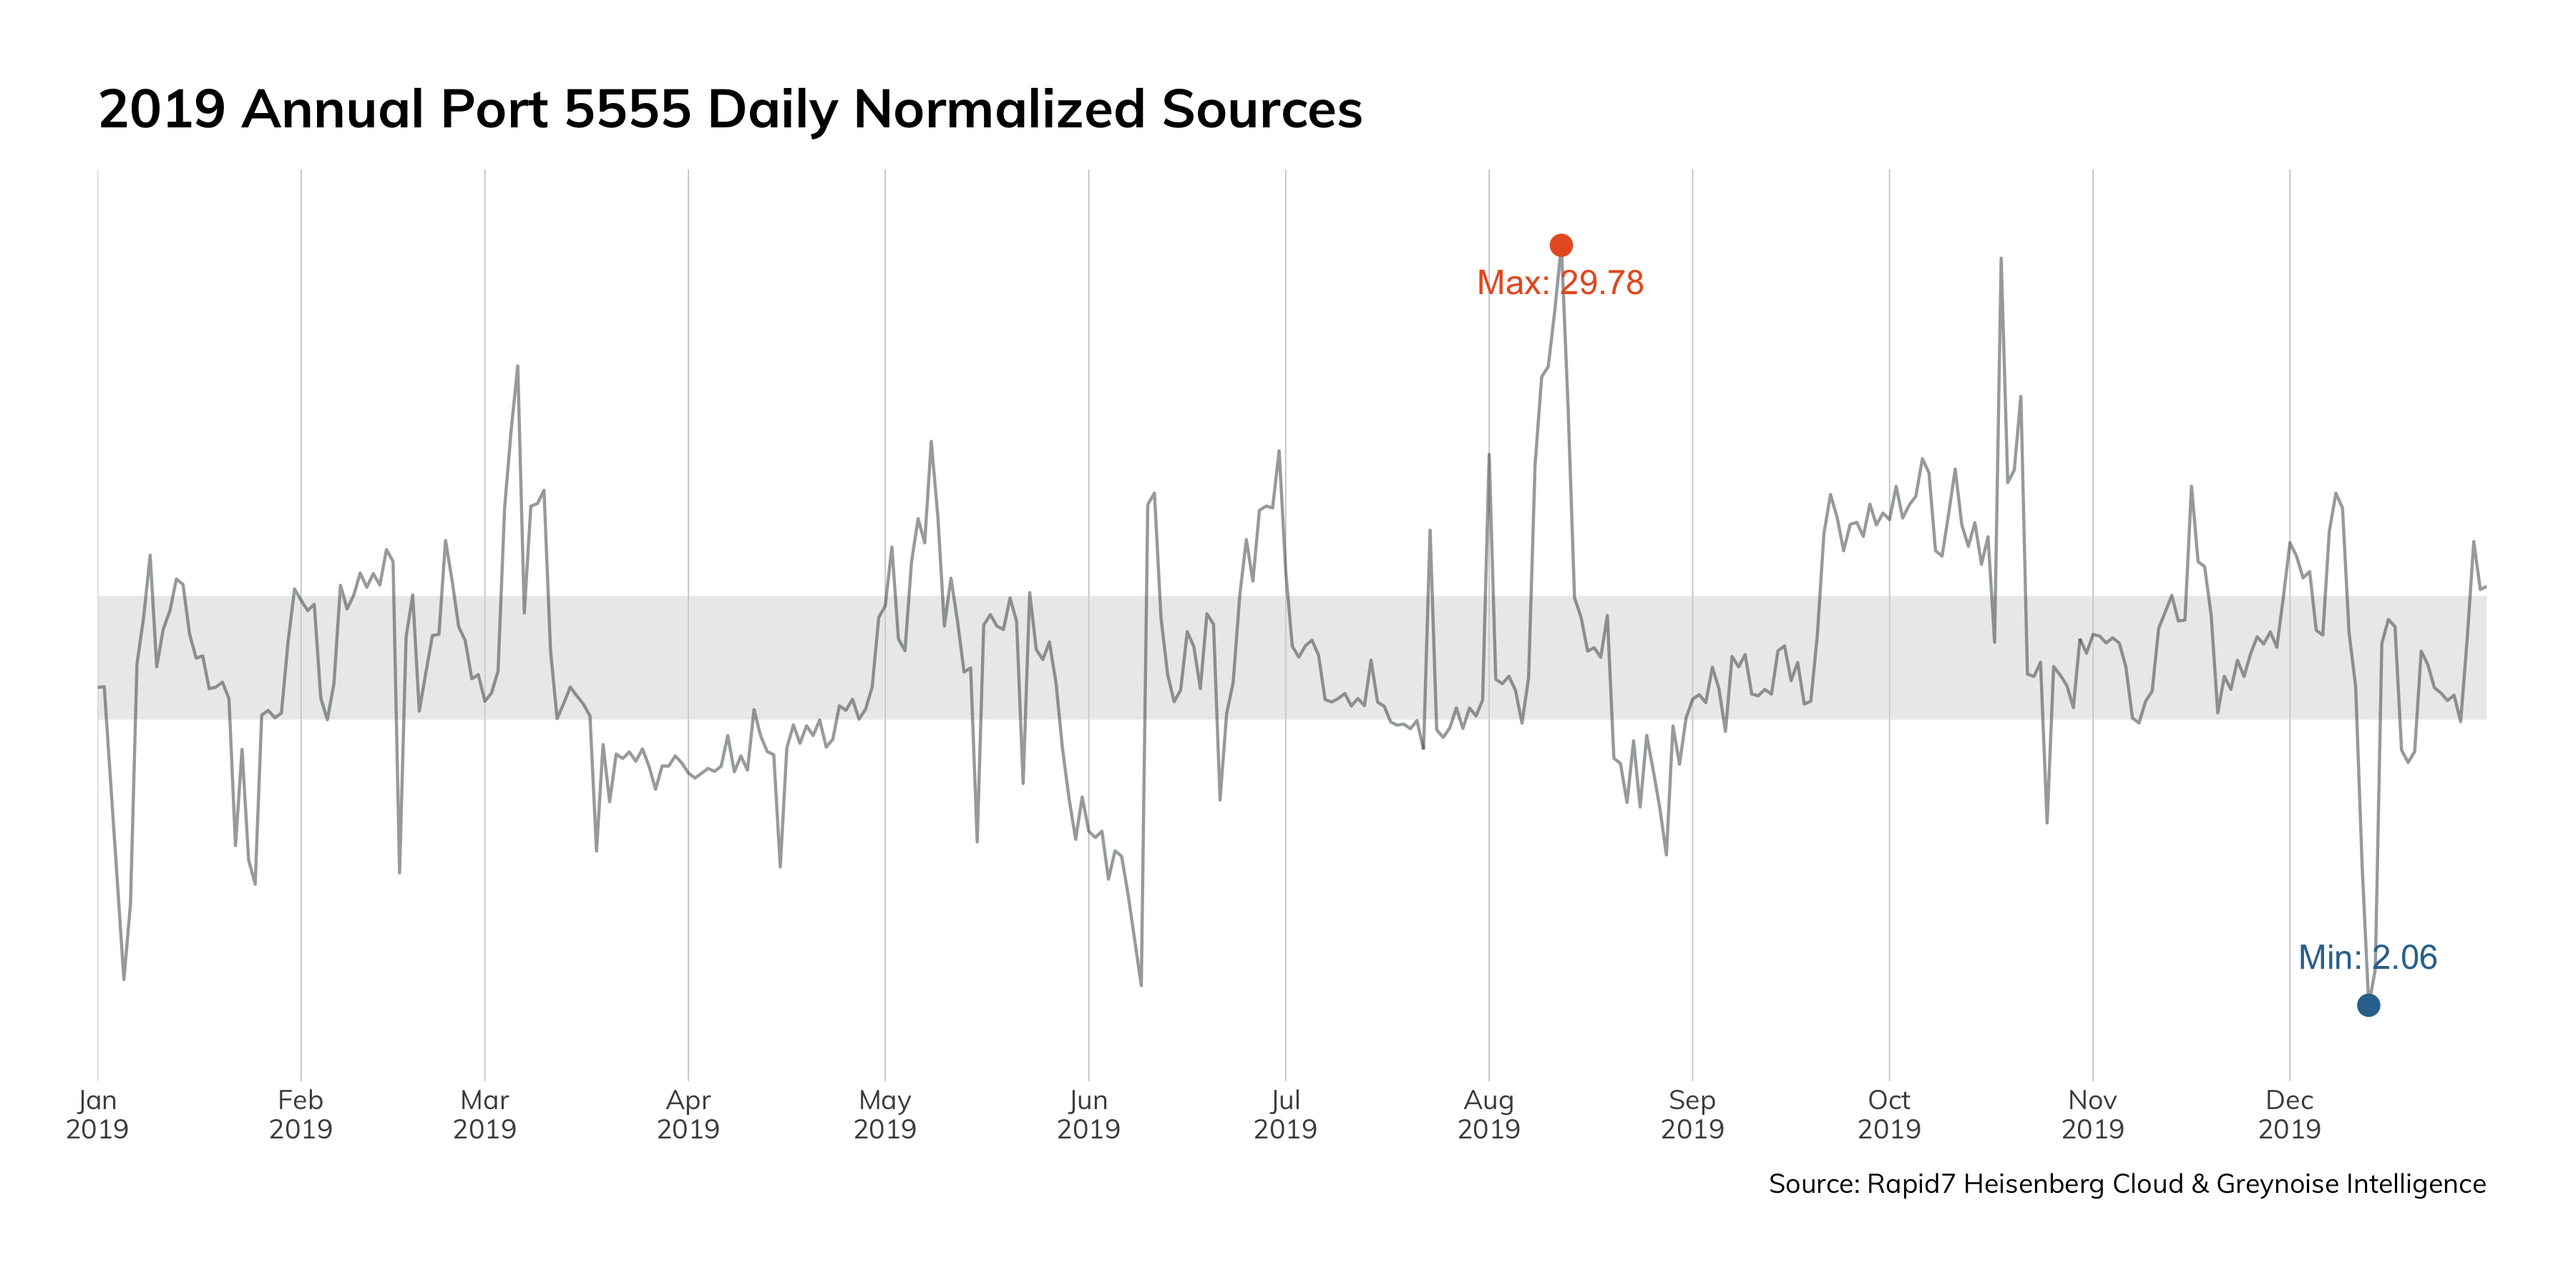 Figure 9: 2019 Annual Port 5555 Daily Normalized Sources